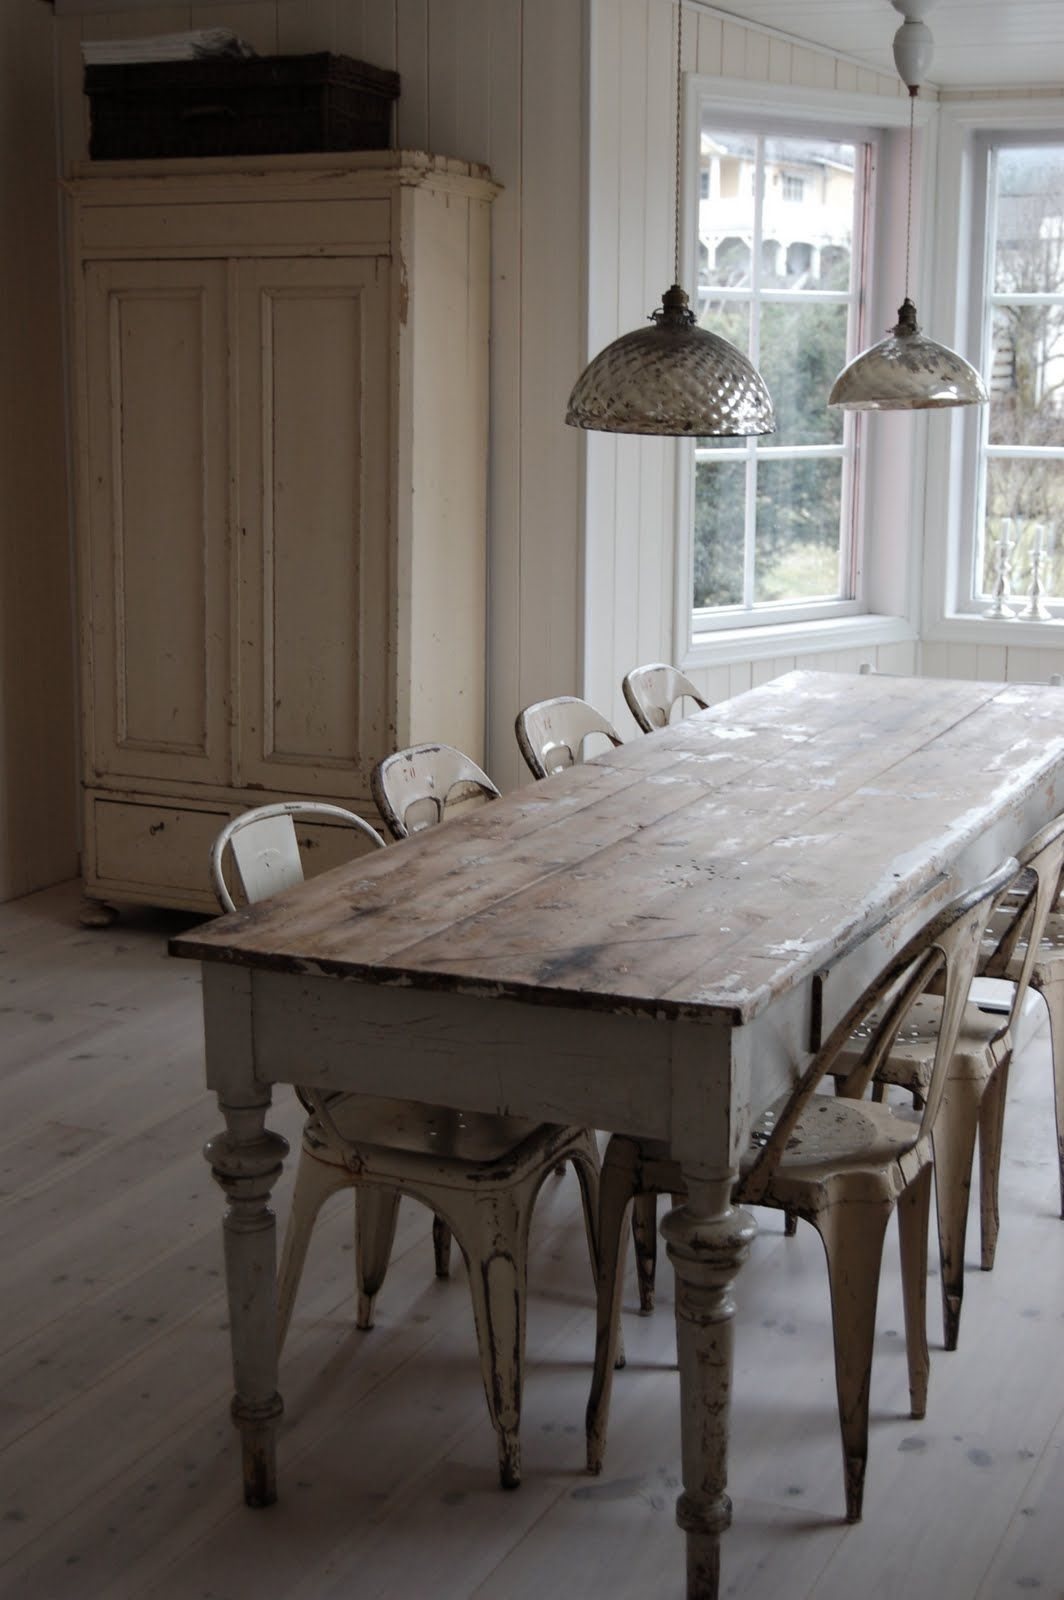 Old farmhouse dining room table & chairs...reclaimed. simple kitchen.  Repinned by www.silver-and-grey.com - Old Farmhouse Dining Room Table & Chairs...reclaimed. Simple Kitchen